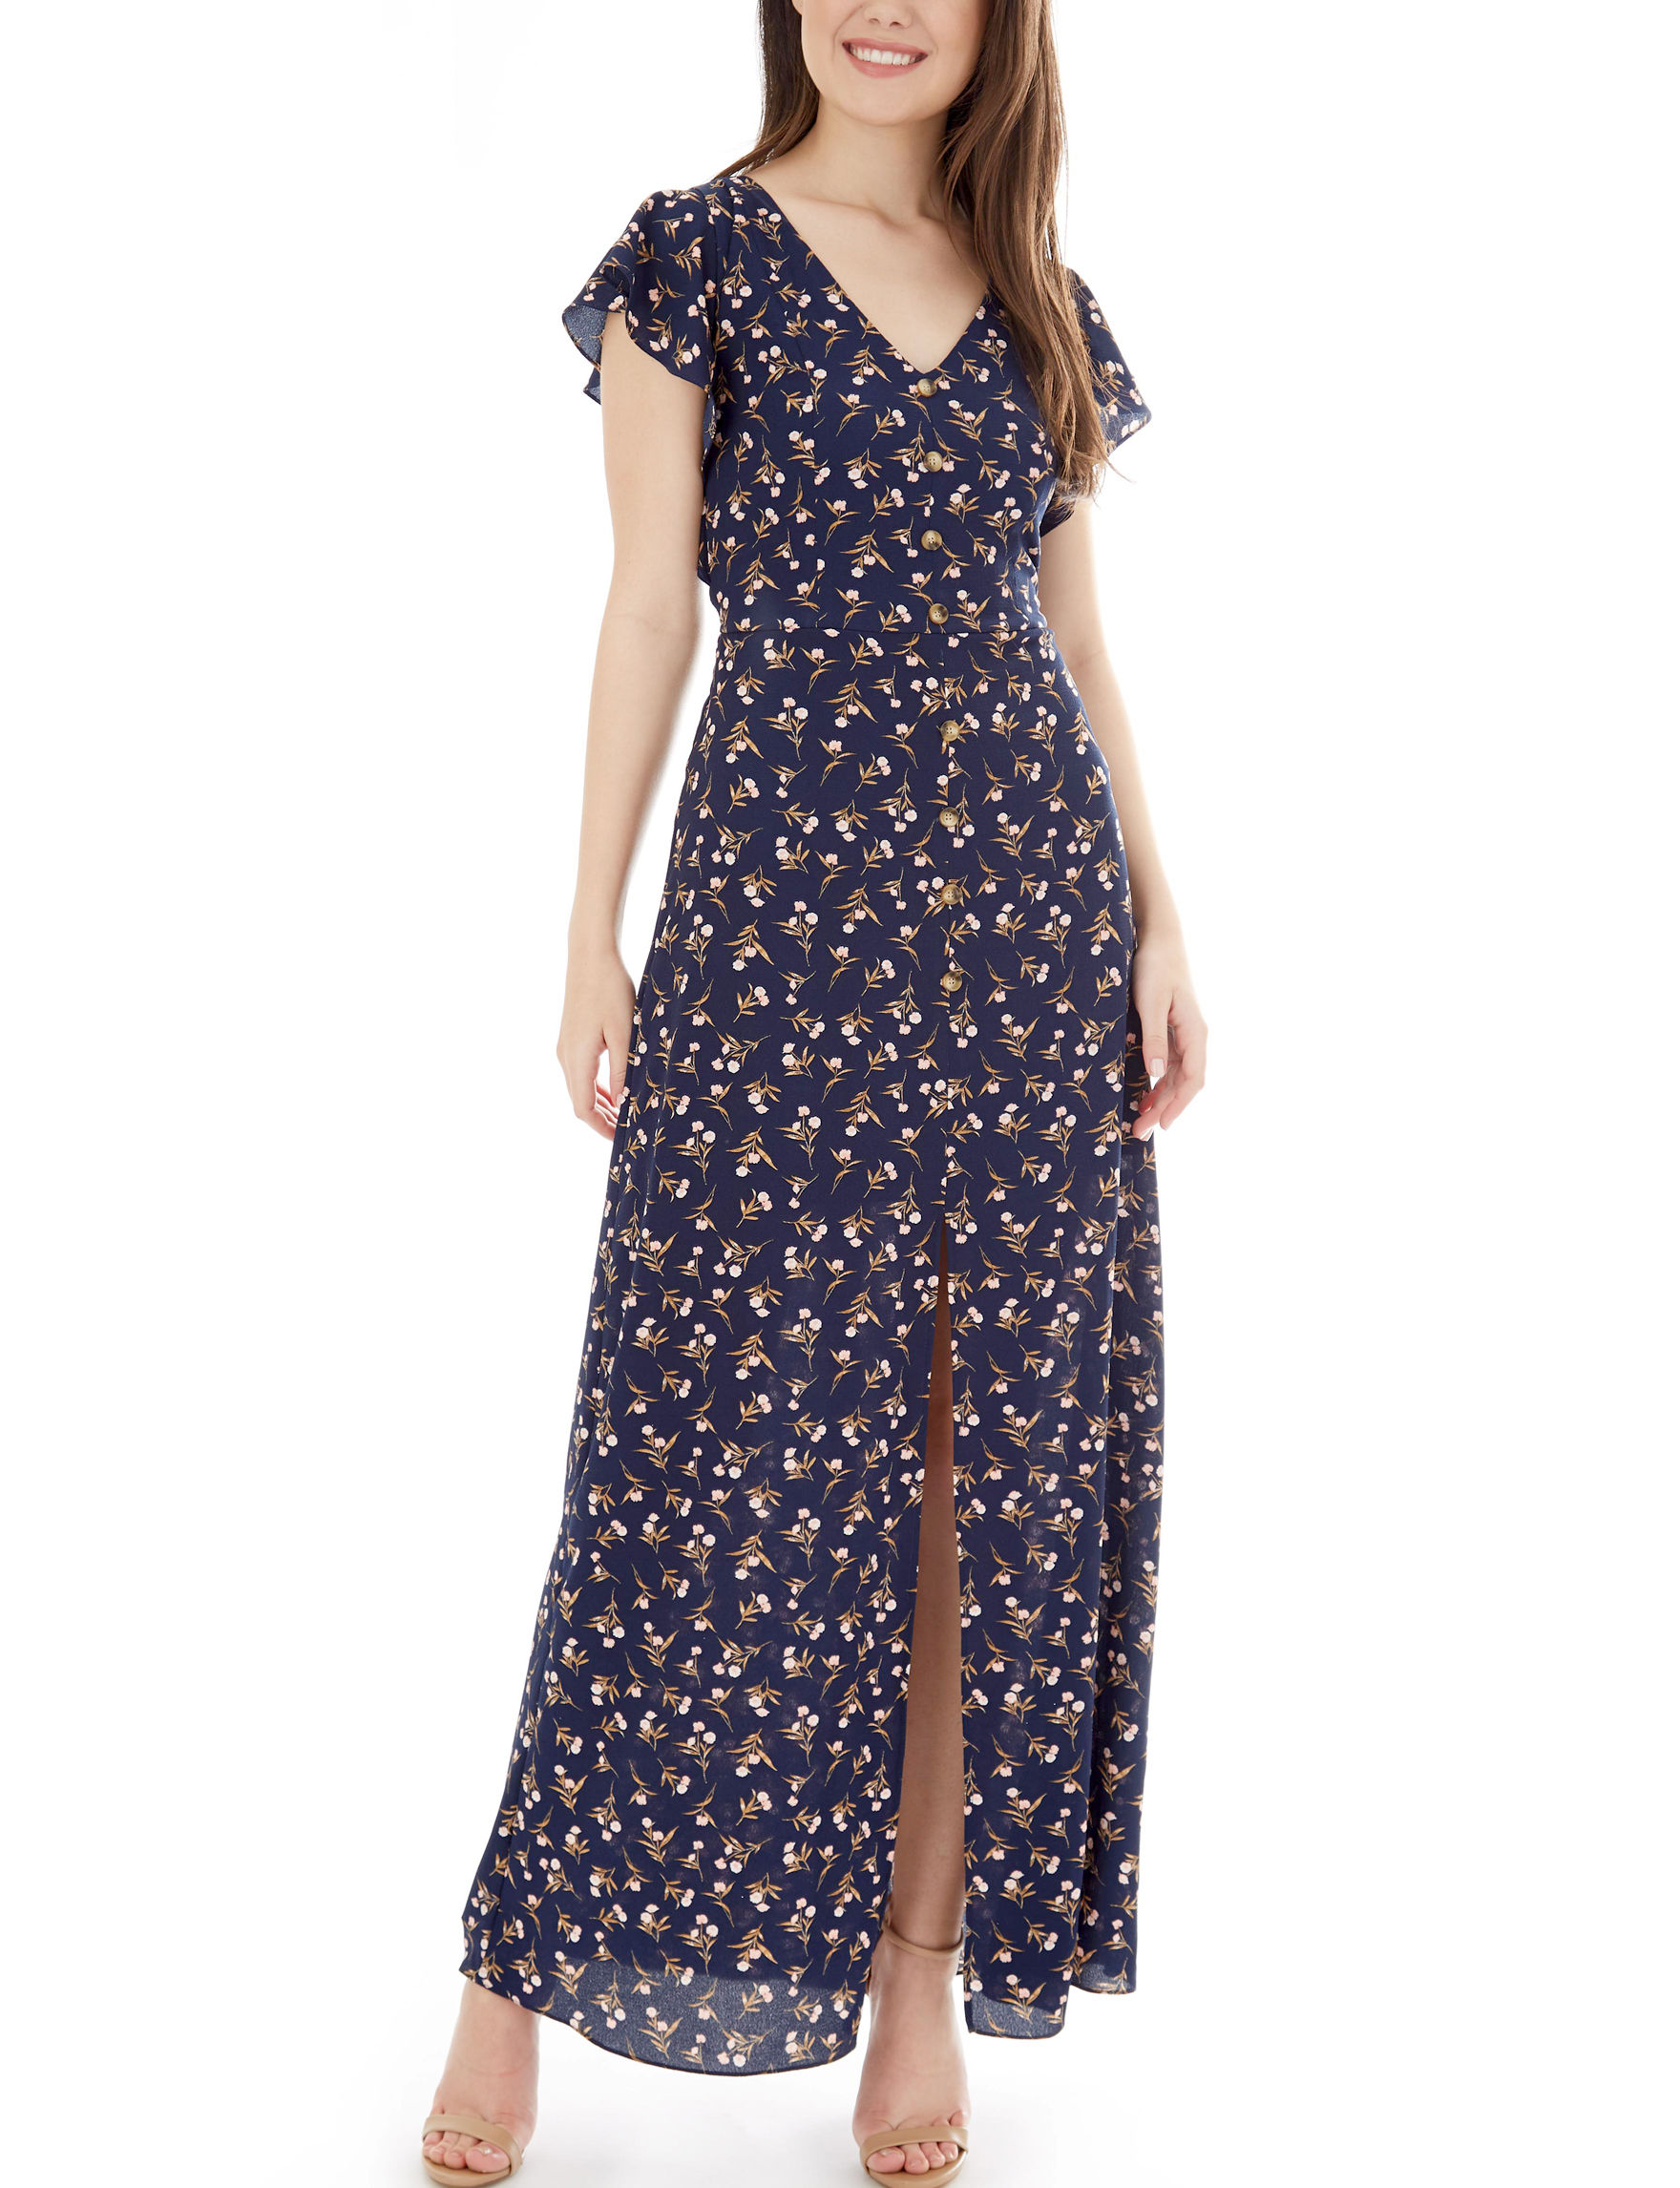 A. Byer Navy Everyday & Casual Maxi Dresses